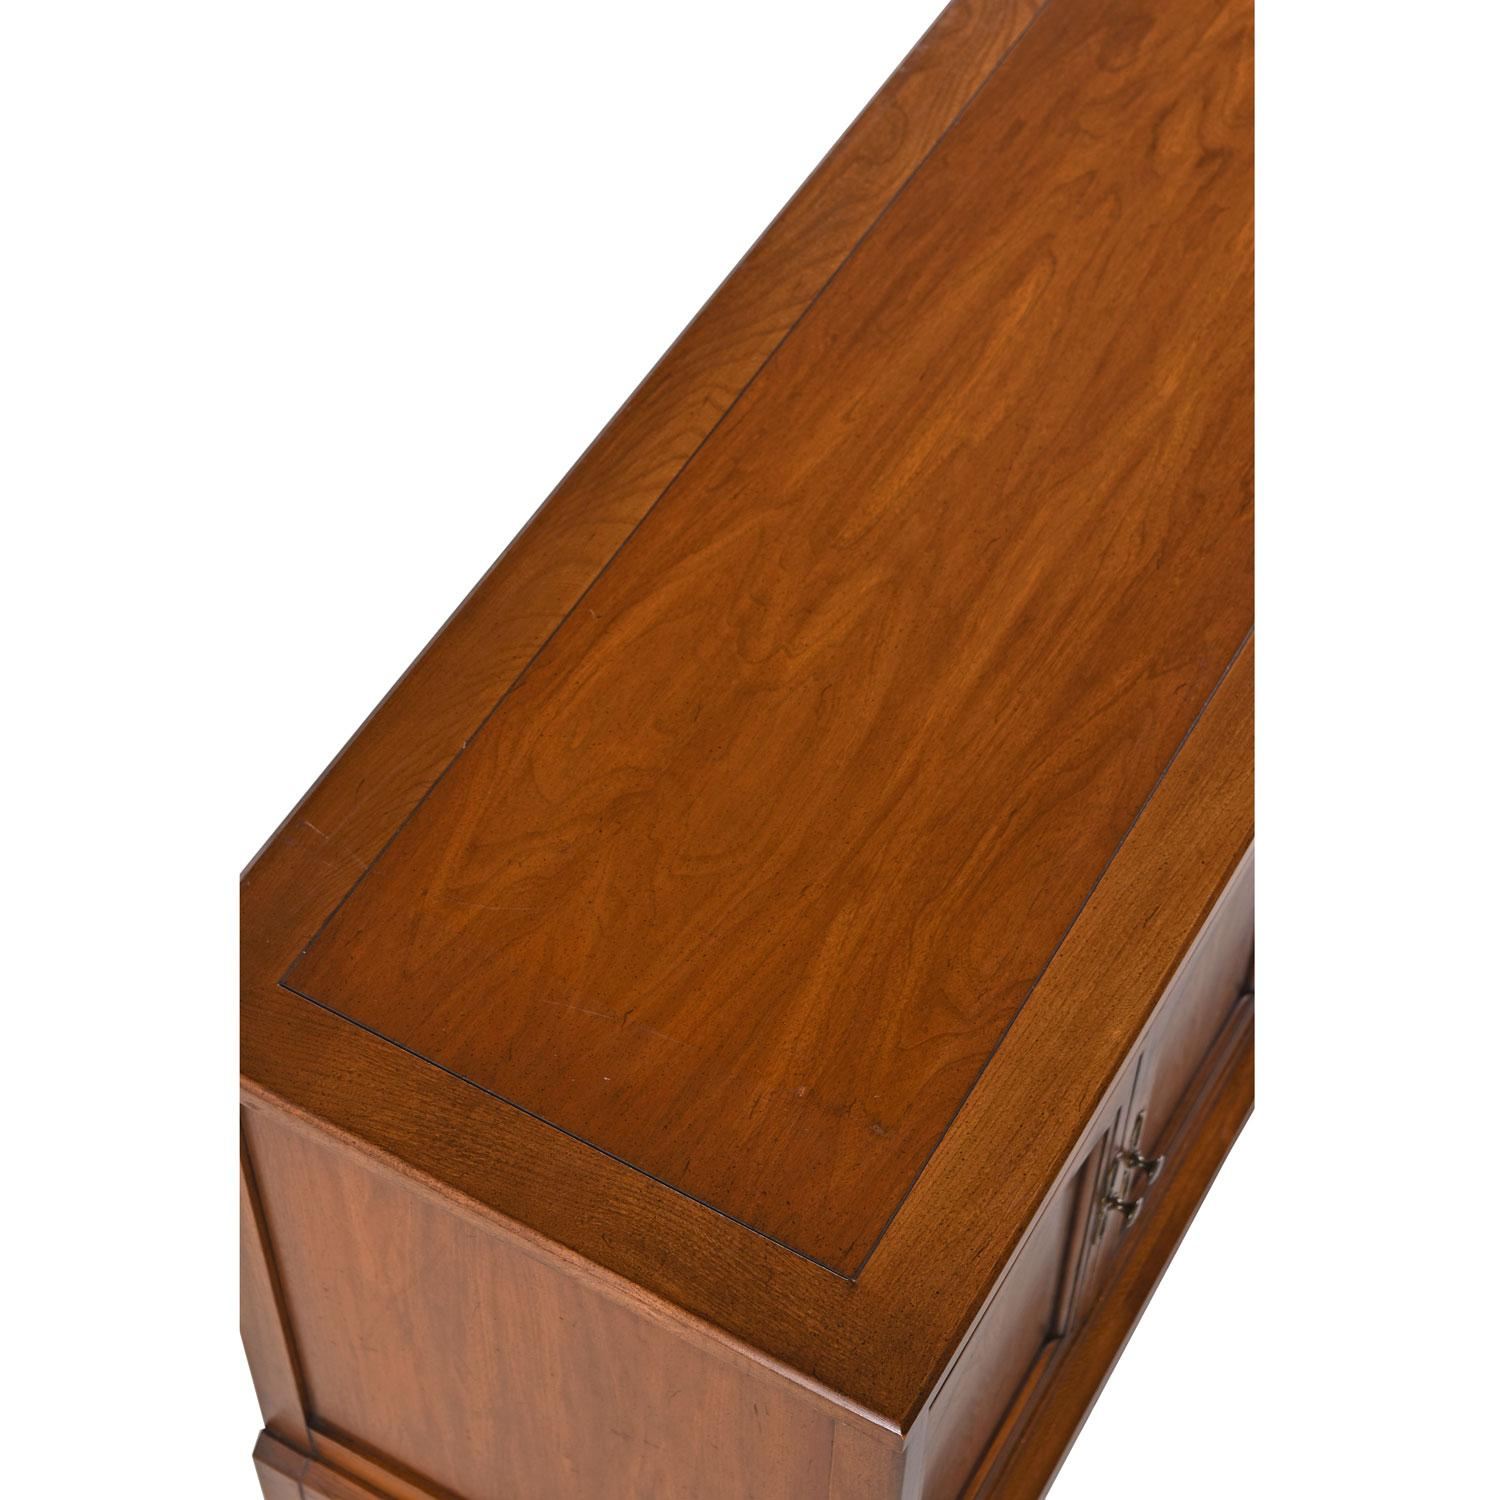 Midcentury Walnut Br Accent Sideboard Credenza By White Fine Furniture At 1stdibs